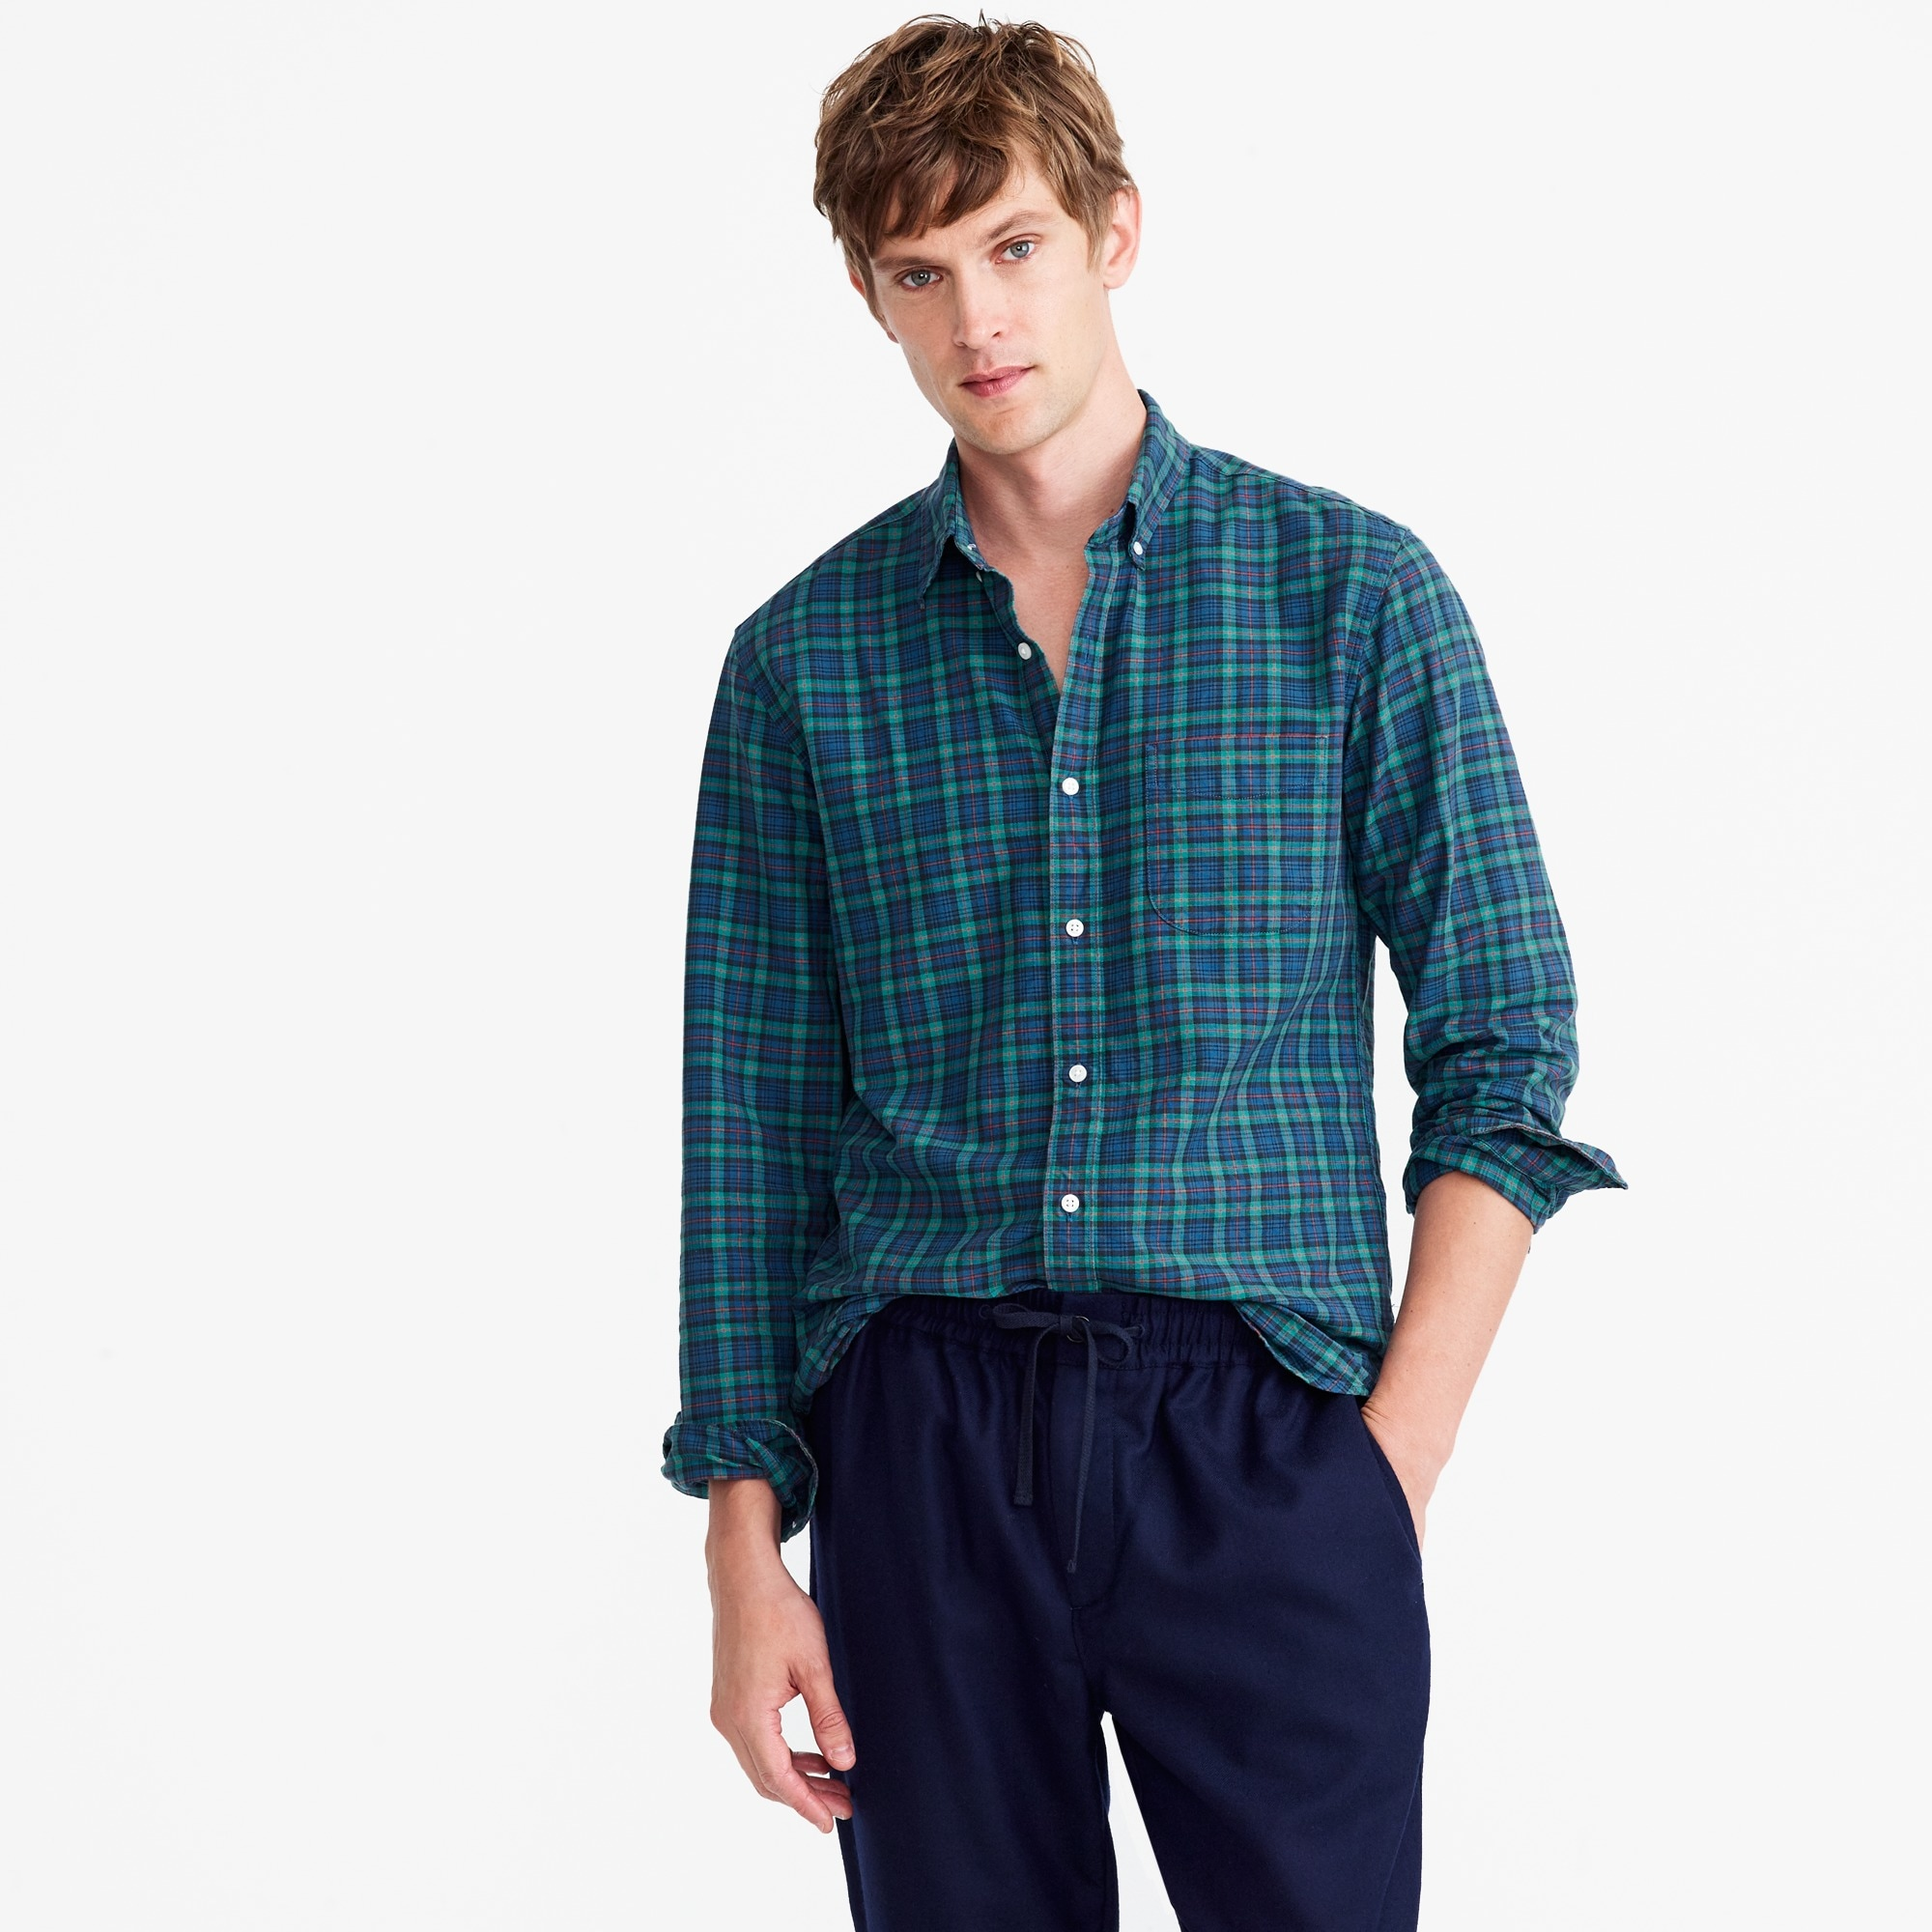 Image 2 for Slim American Pima cotton oxford shirt in tartan